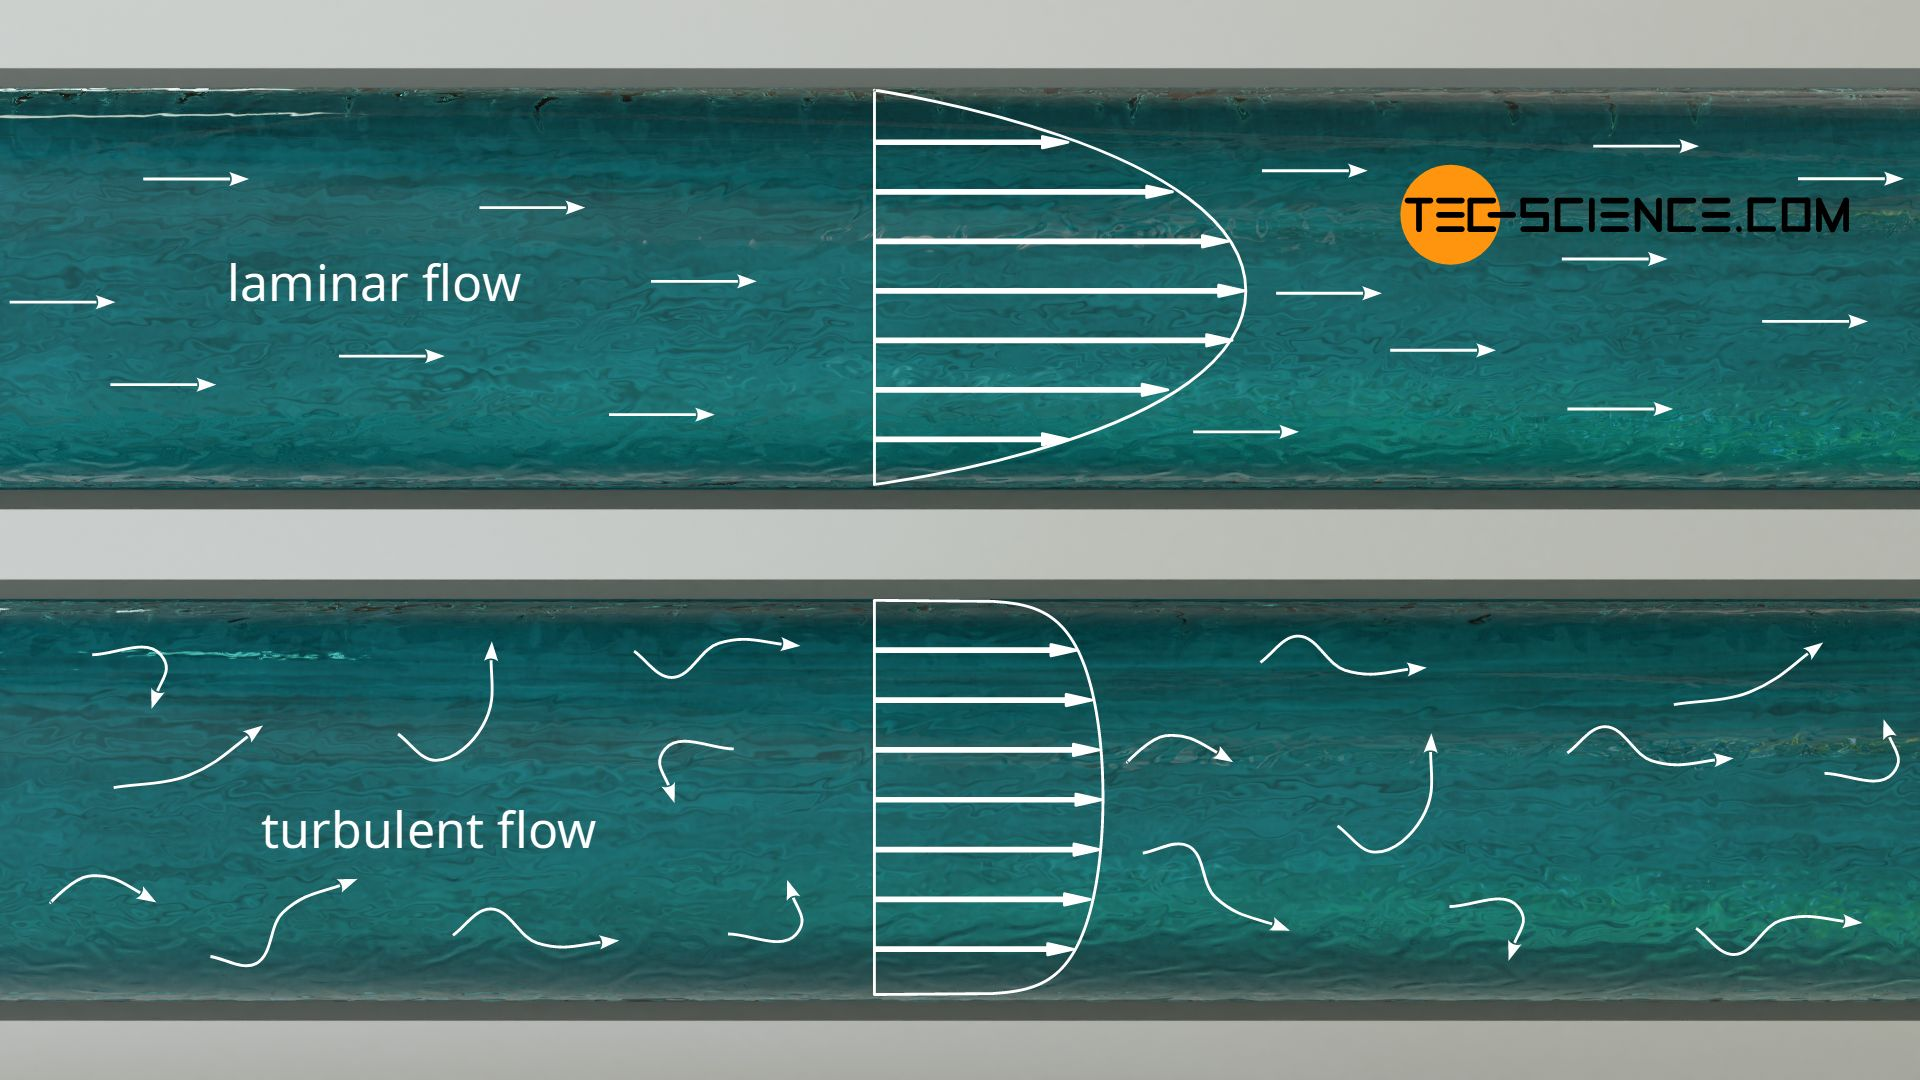 Velocity distribution in a pipe with laminar and turbulent flow